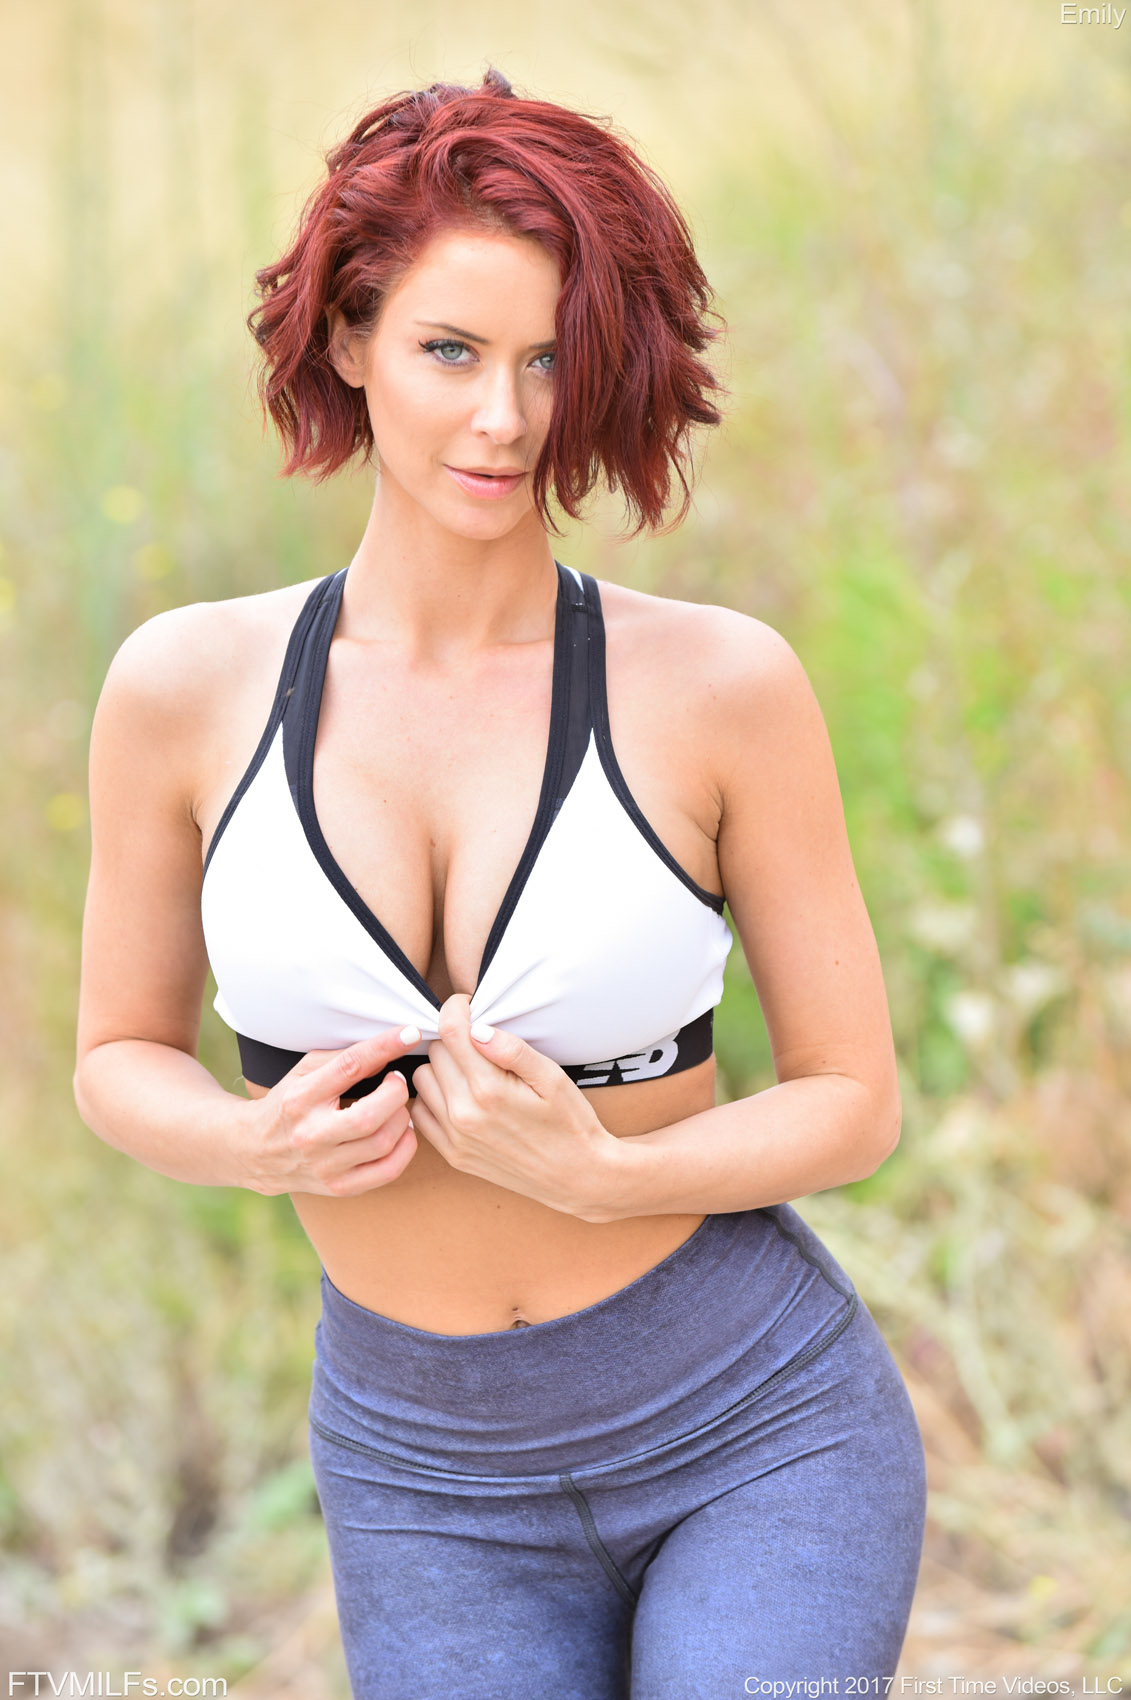 Emily Addison Morning Workout FTV Milfs / Hotty Stop